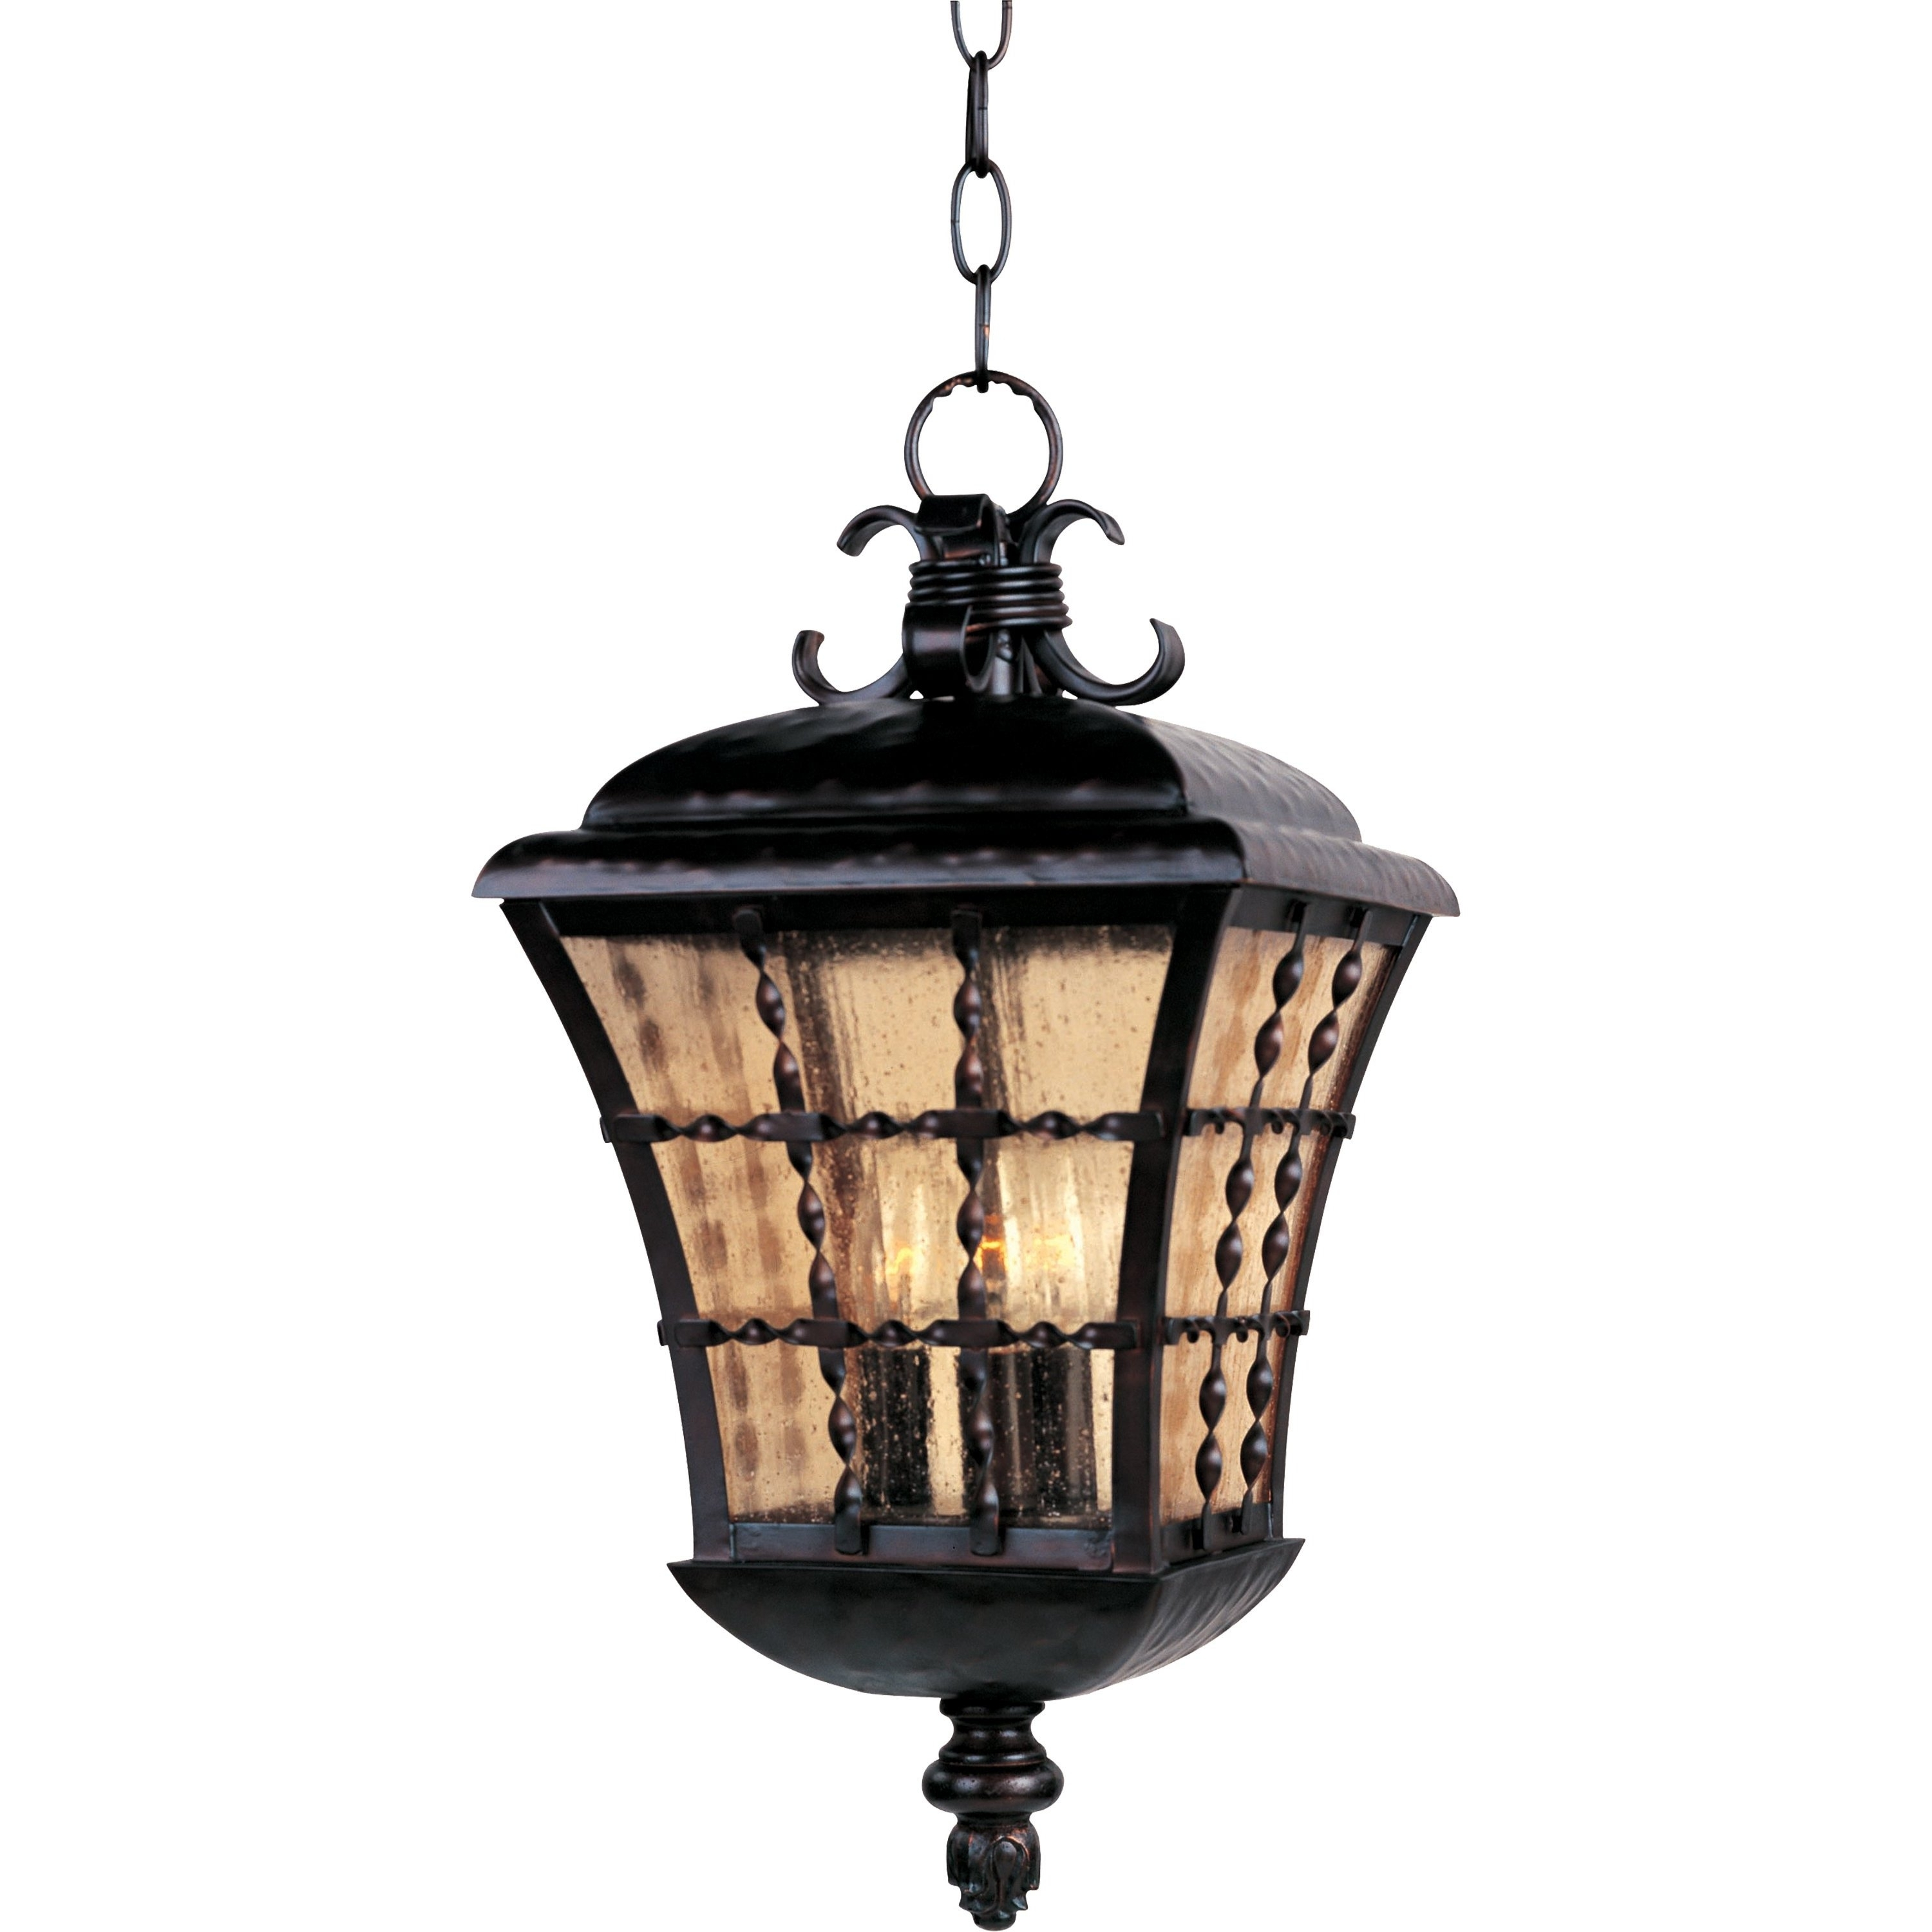 Outdoor Ceiling Lighting Ideas With Hanging Light Fixtures Picture Within Outdoor Ceiling Hanging Lights (#10 of 15)